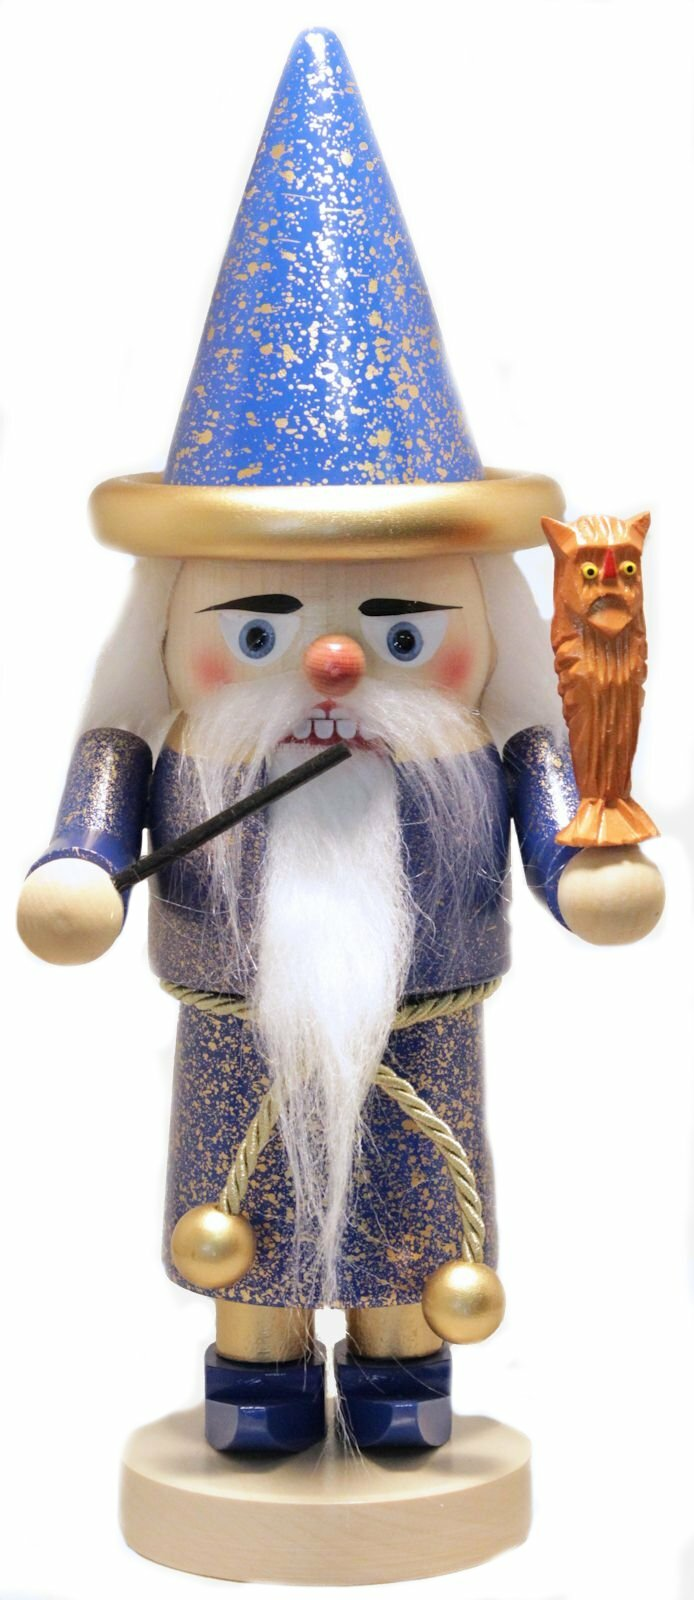 Pinnaclepeak Steinbach Signed Troll Merlin The Wizard German Wooden Christmas Nutcracker Wayfair